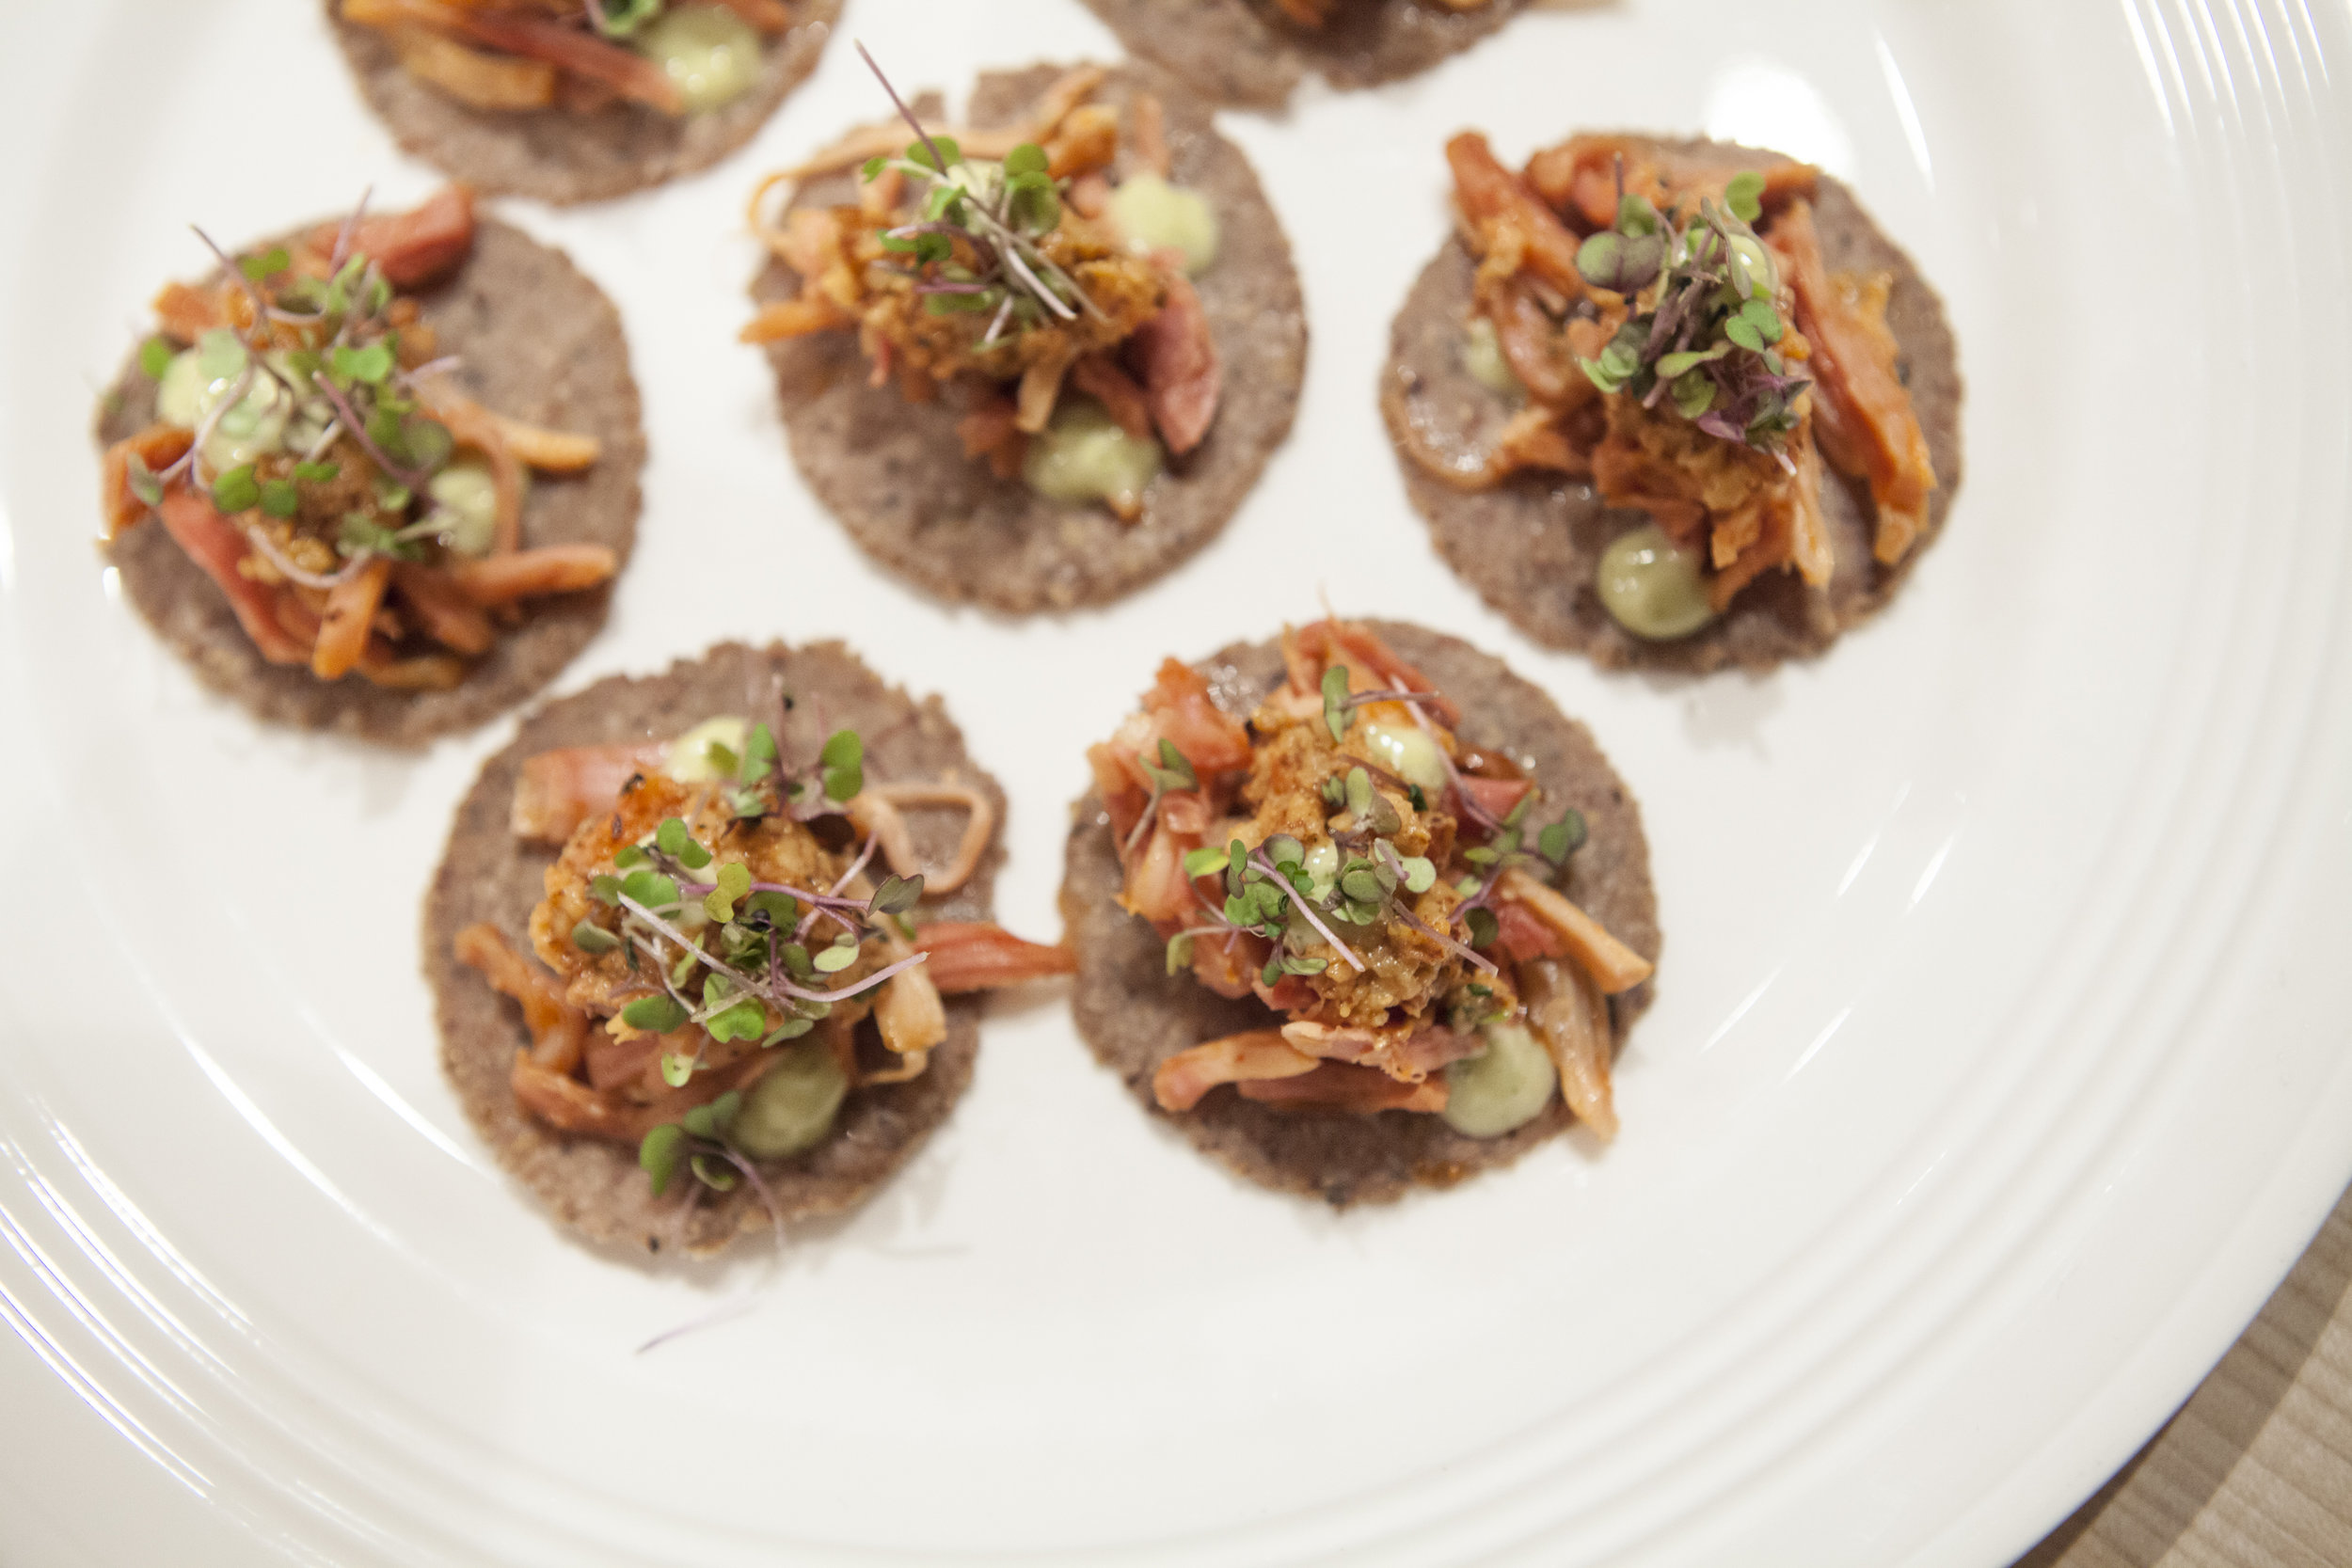 PASSED APPETIZERS - Dates Stuffed with Chorizo$2.25Crispy Polenta, Whipped Goat Cheese, Red Pepper Chutney$1.75Charred Vegetable Tostada, Black Bean Puree$2.25Ancho BBQ Pork, White Cheddar Biscuit, Pickled Red Onions$2.25Mexican Shrimp Cocktail, Avocado, Cilantro$2.25Green Chili Chicken, Guacamole, Tontine$2.25